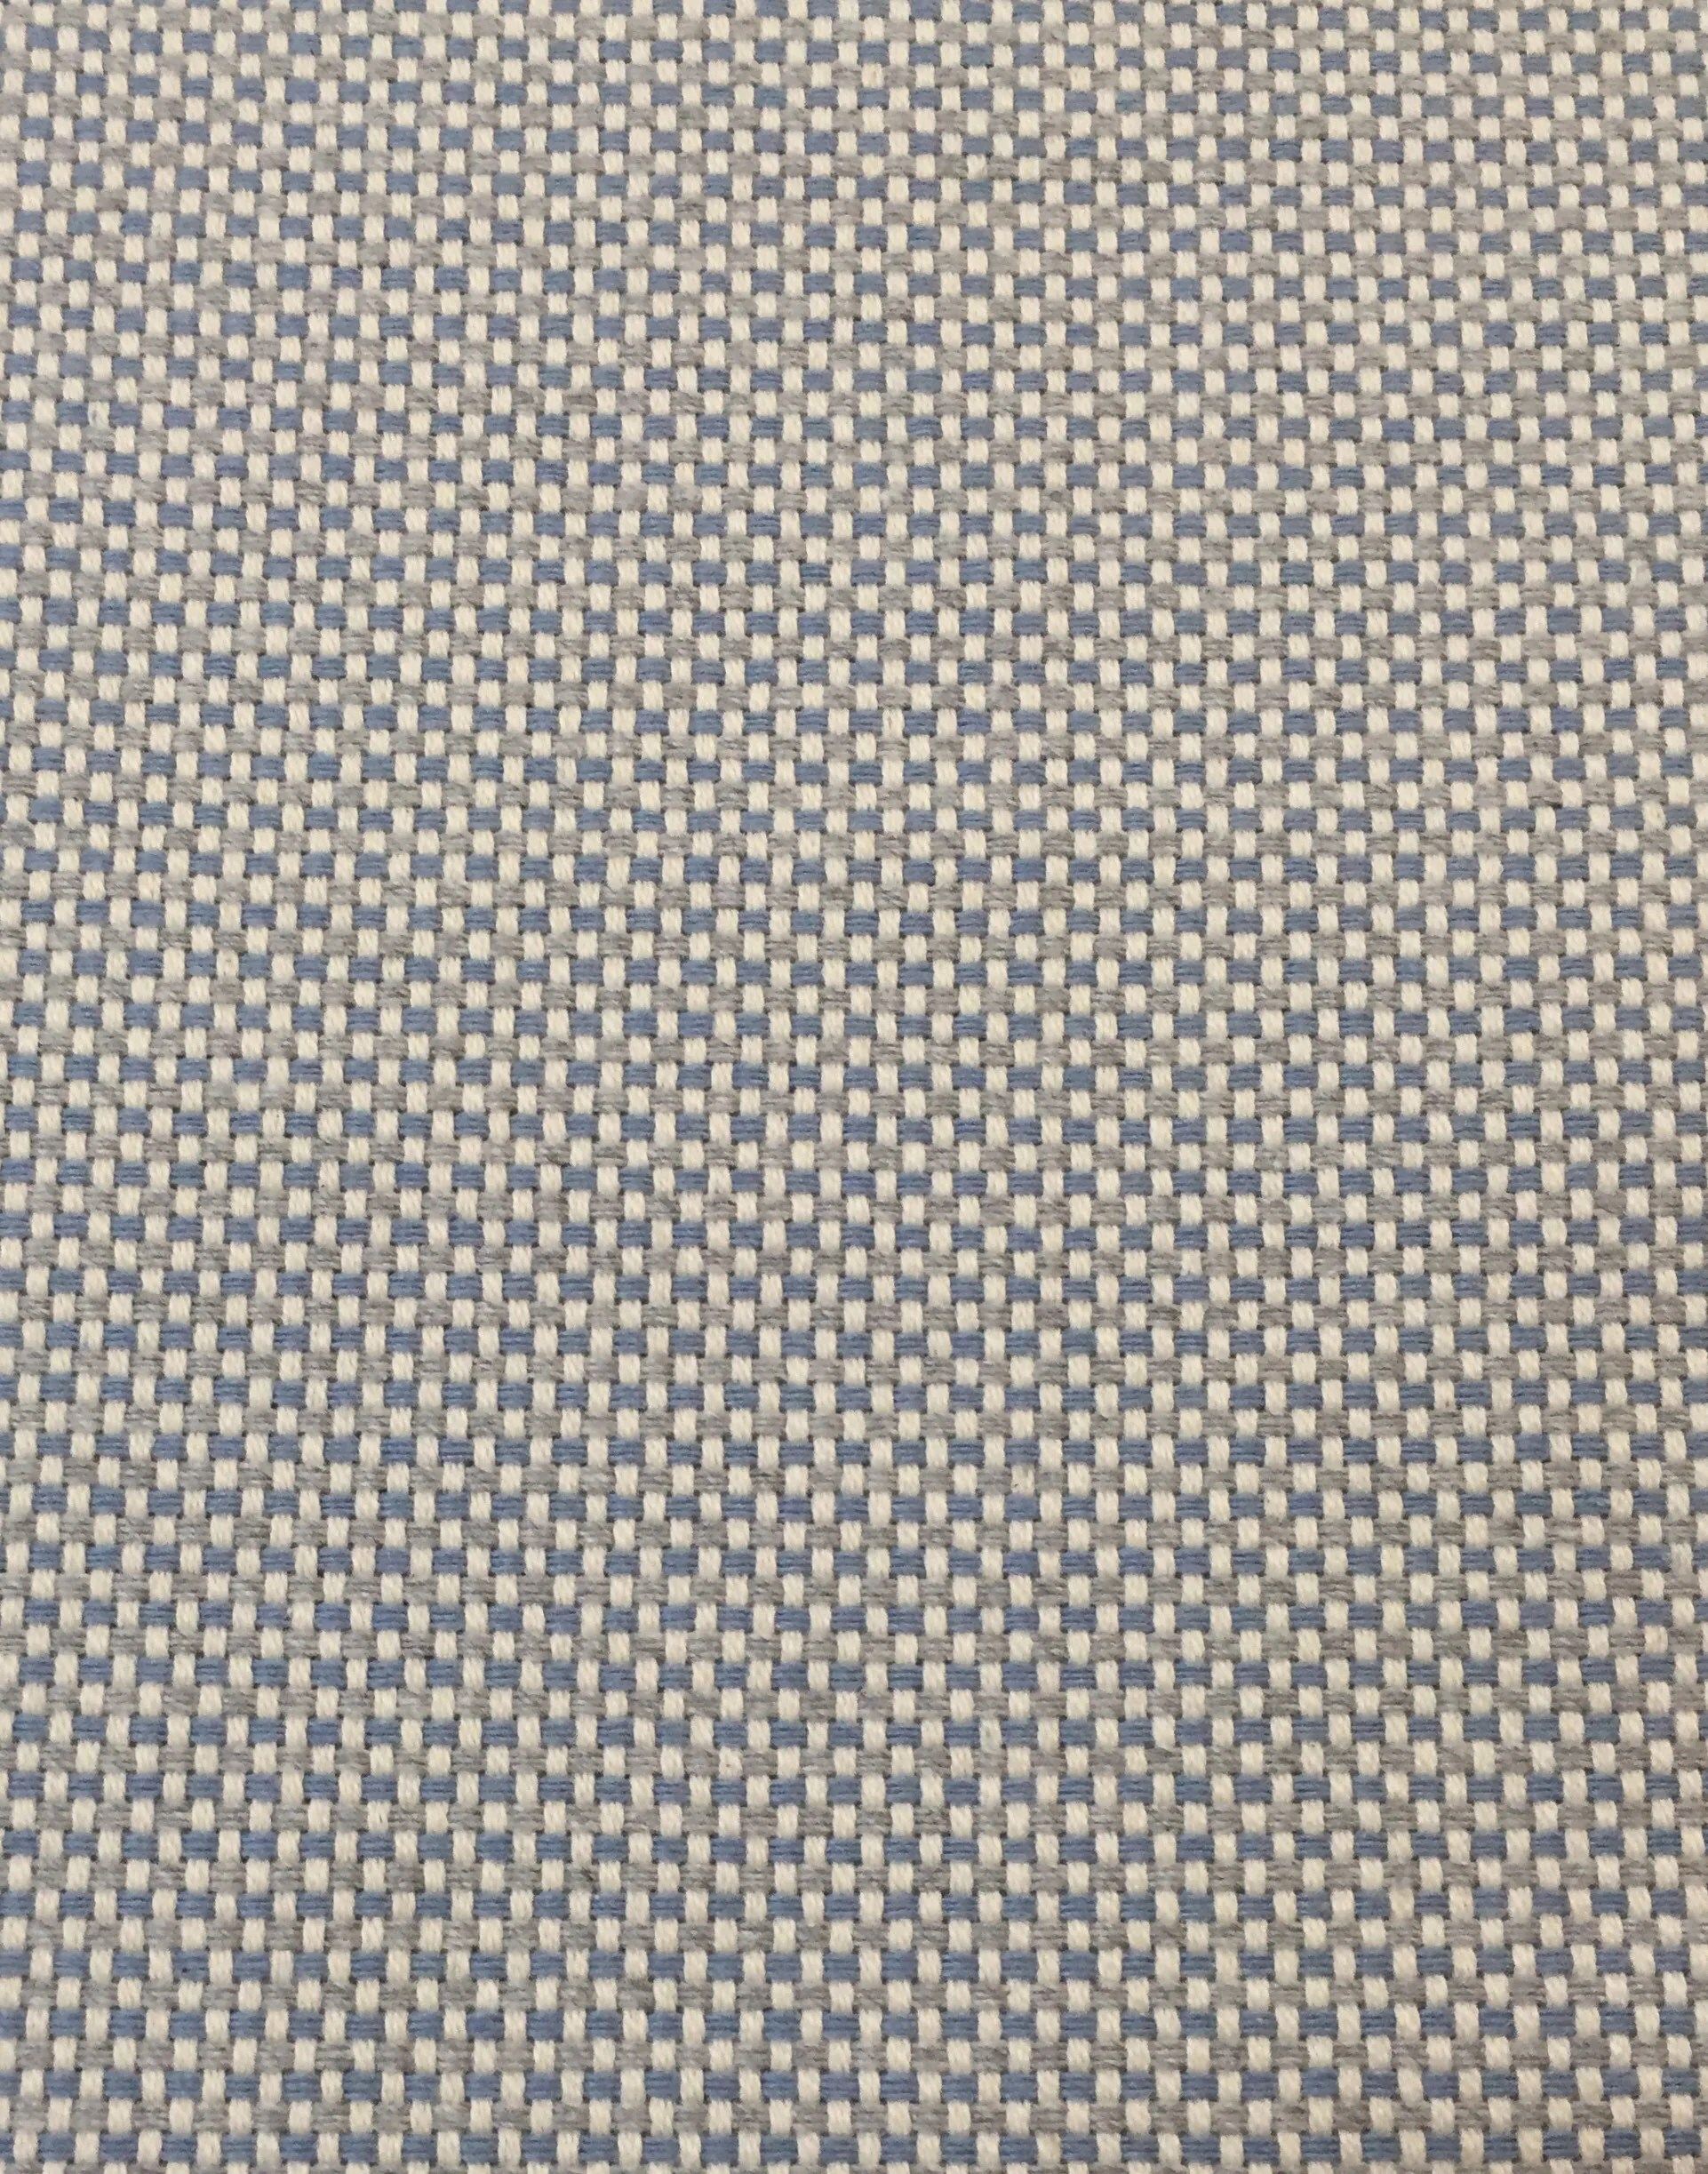 Sofa Fabric Samples Small Baby Blue And White Woven Upholstery Fabric By The Yard